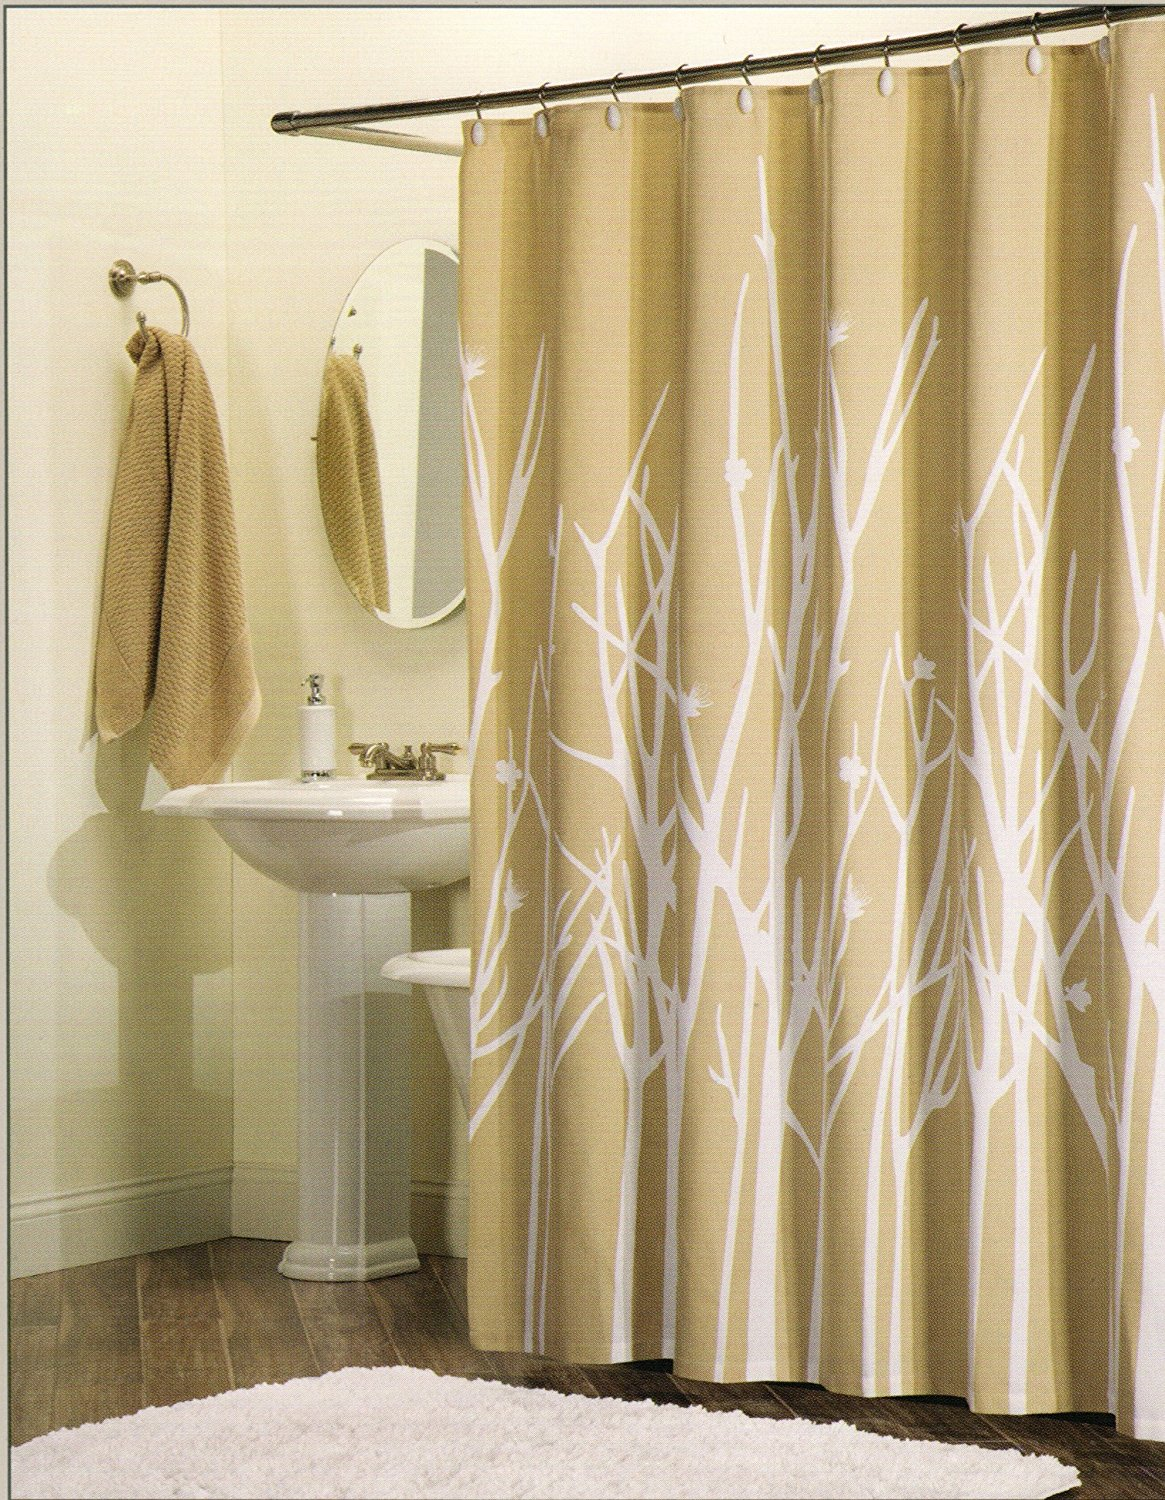 Get Quotations 100 Percent Cotton Shower Curtain Branches White Beige Tan 72 Inch By